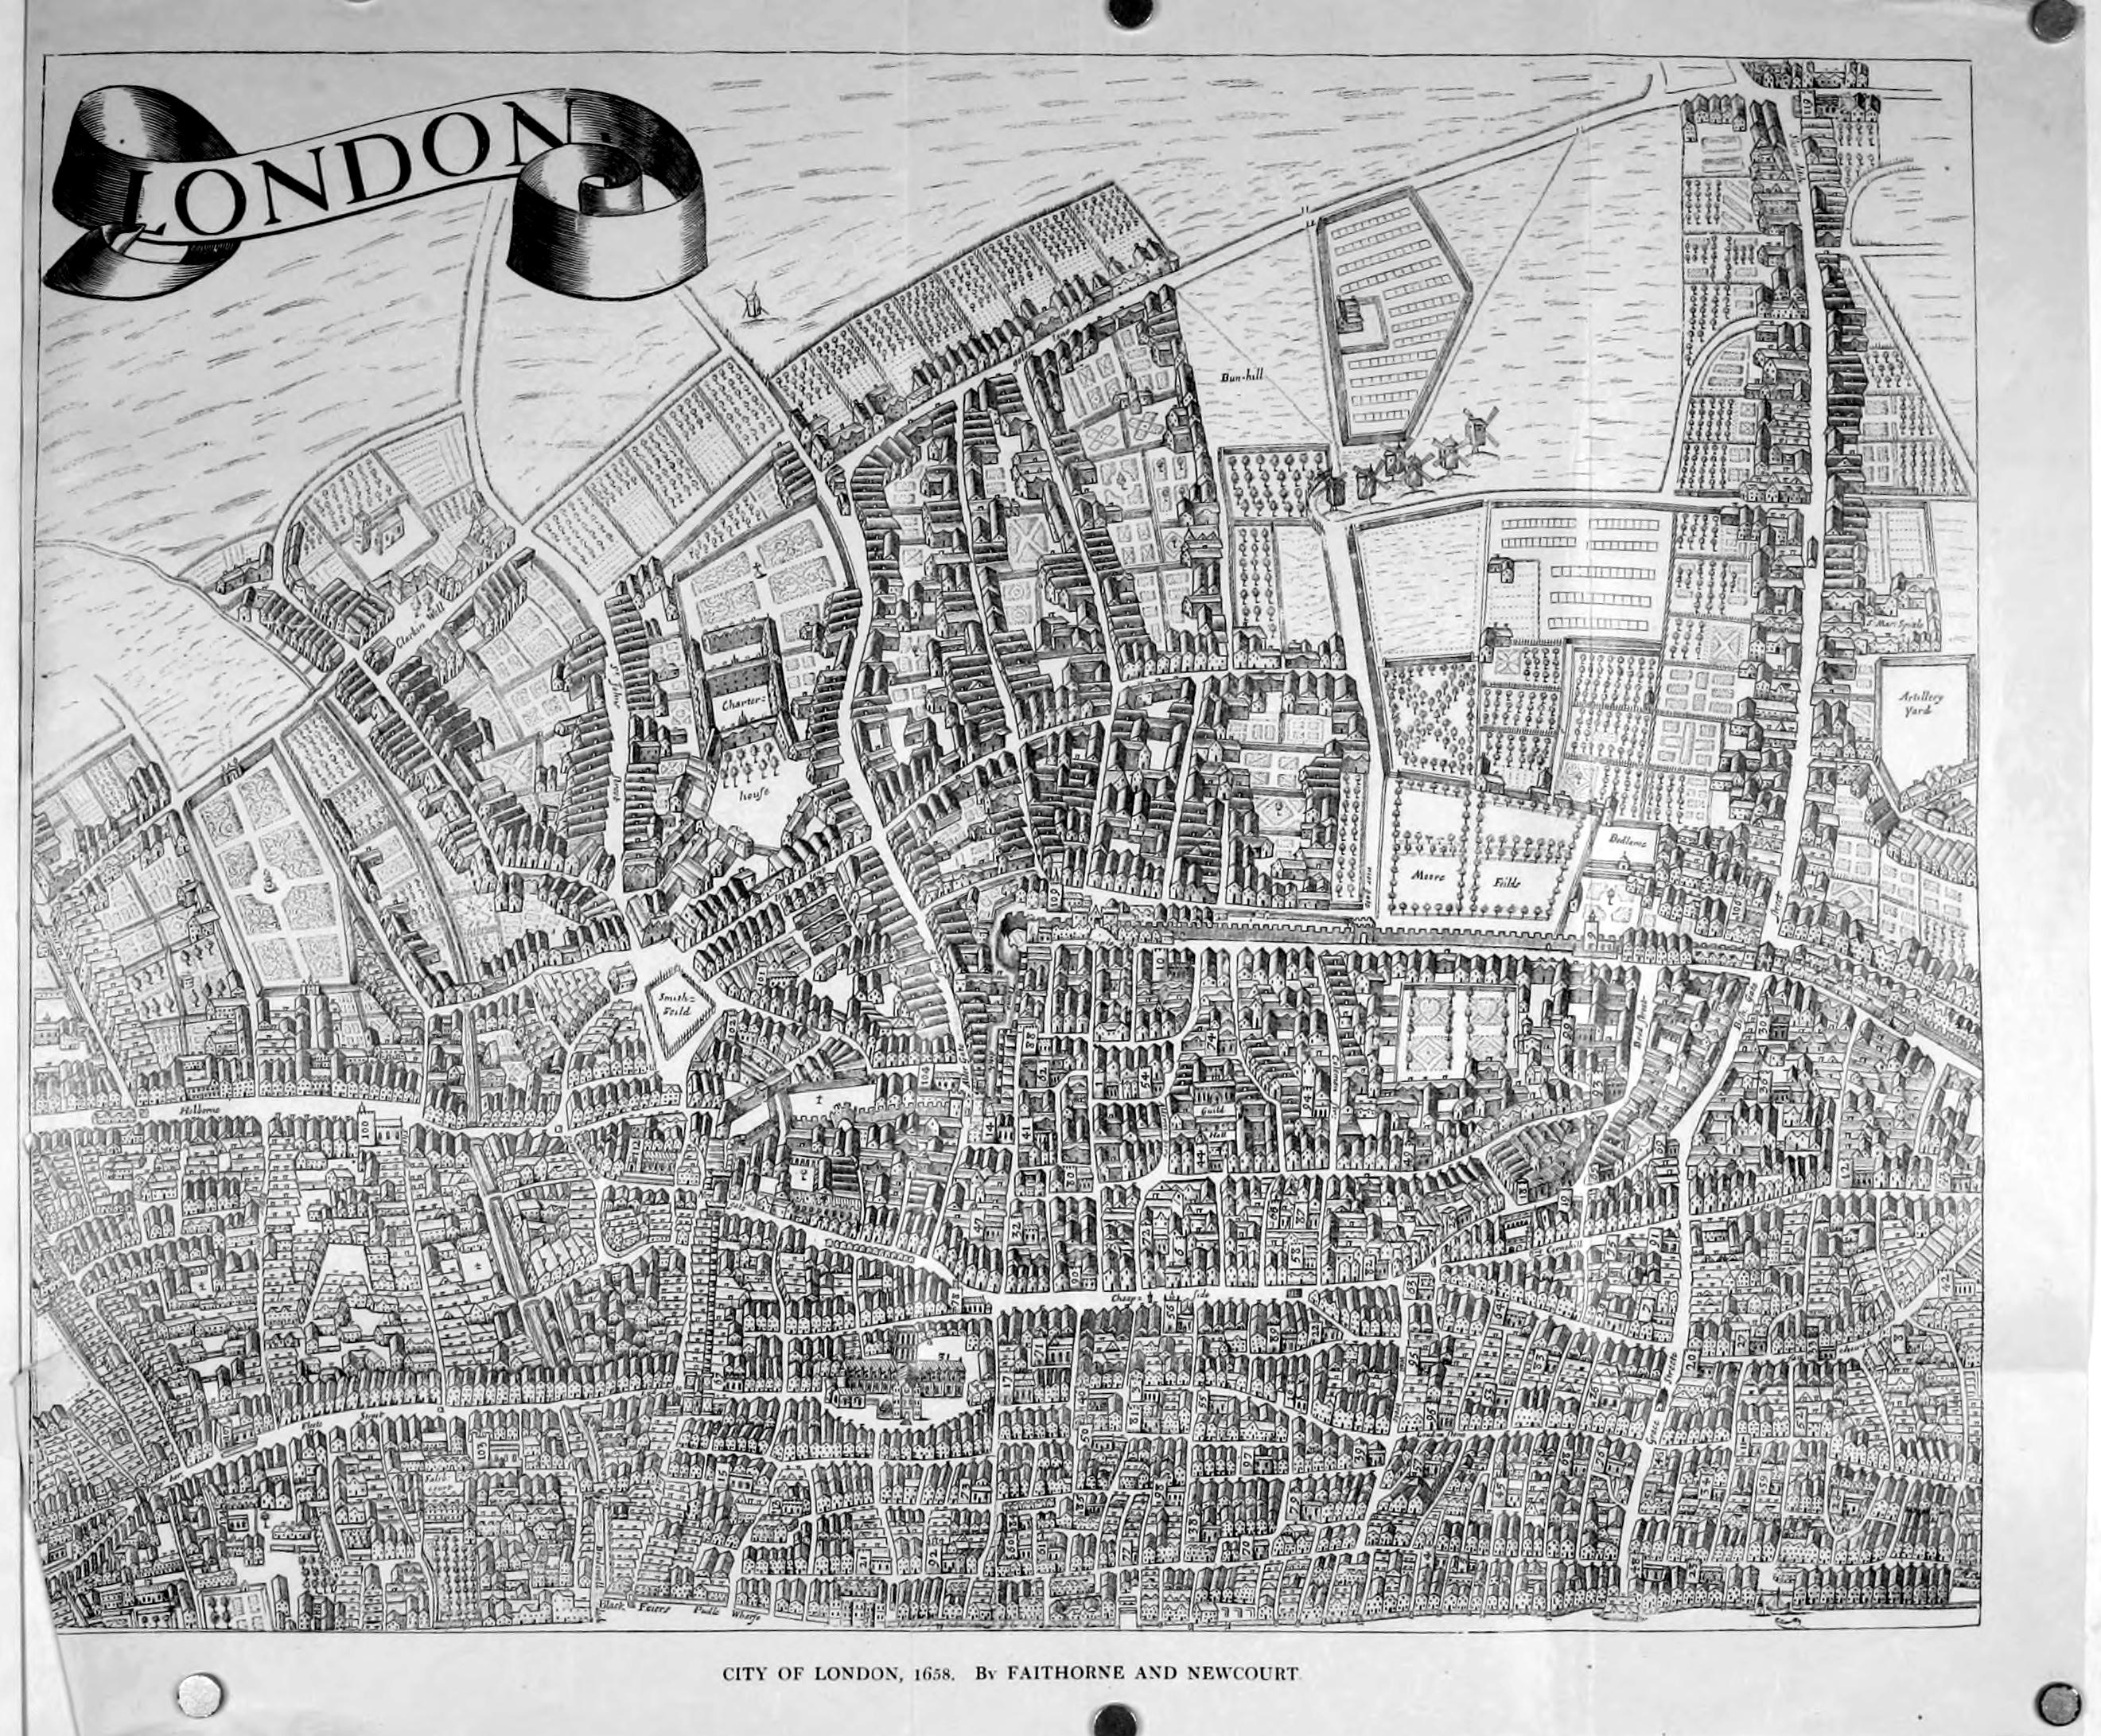 William Faithorne's 1658 map of London. Image courtesy of Wikimedia Commons.